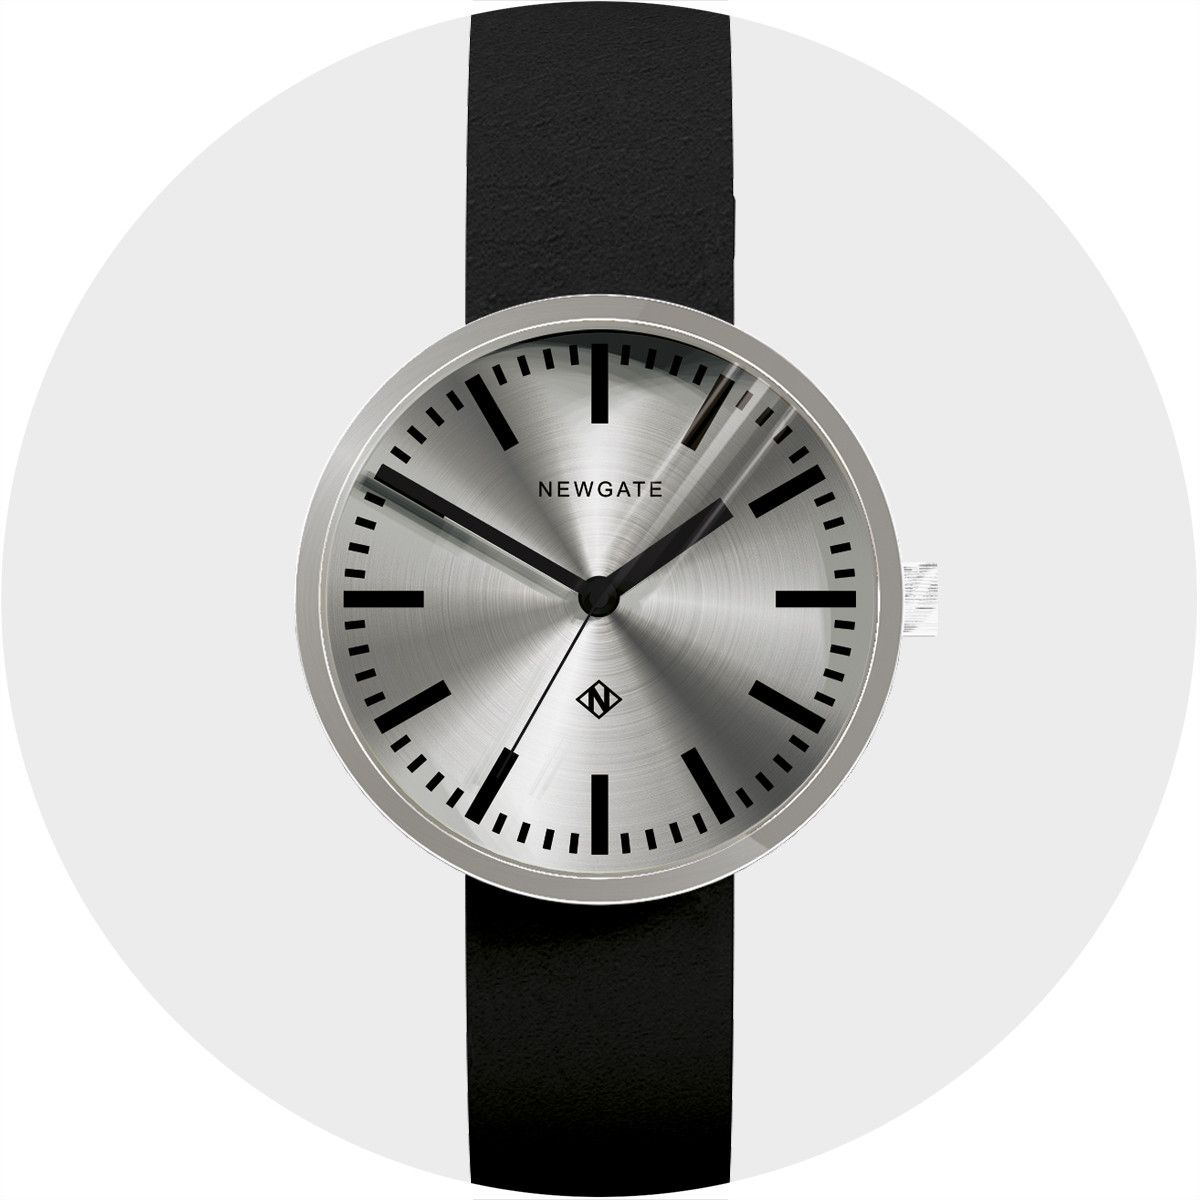 595cf51b328678 The Drummer Grand Oversized Minimalist Watch | Spun Steel | Black Leather  Strap An oversized straight-cut stainless steel cylinder case holds a  minimalist ...